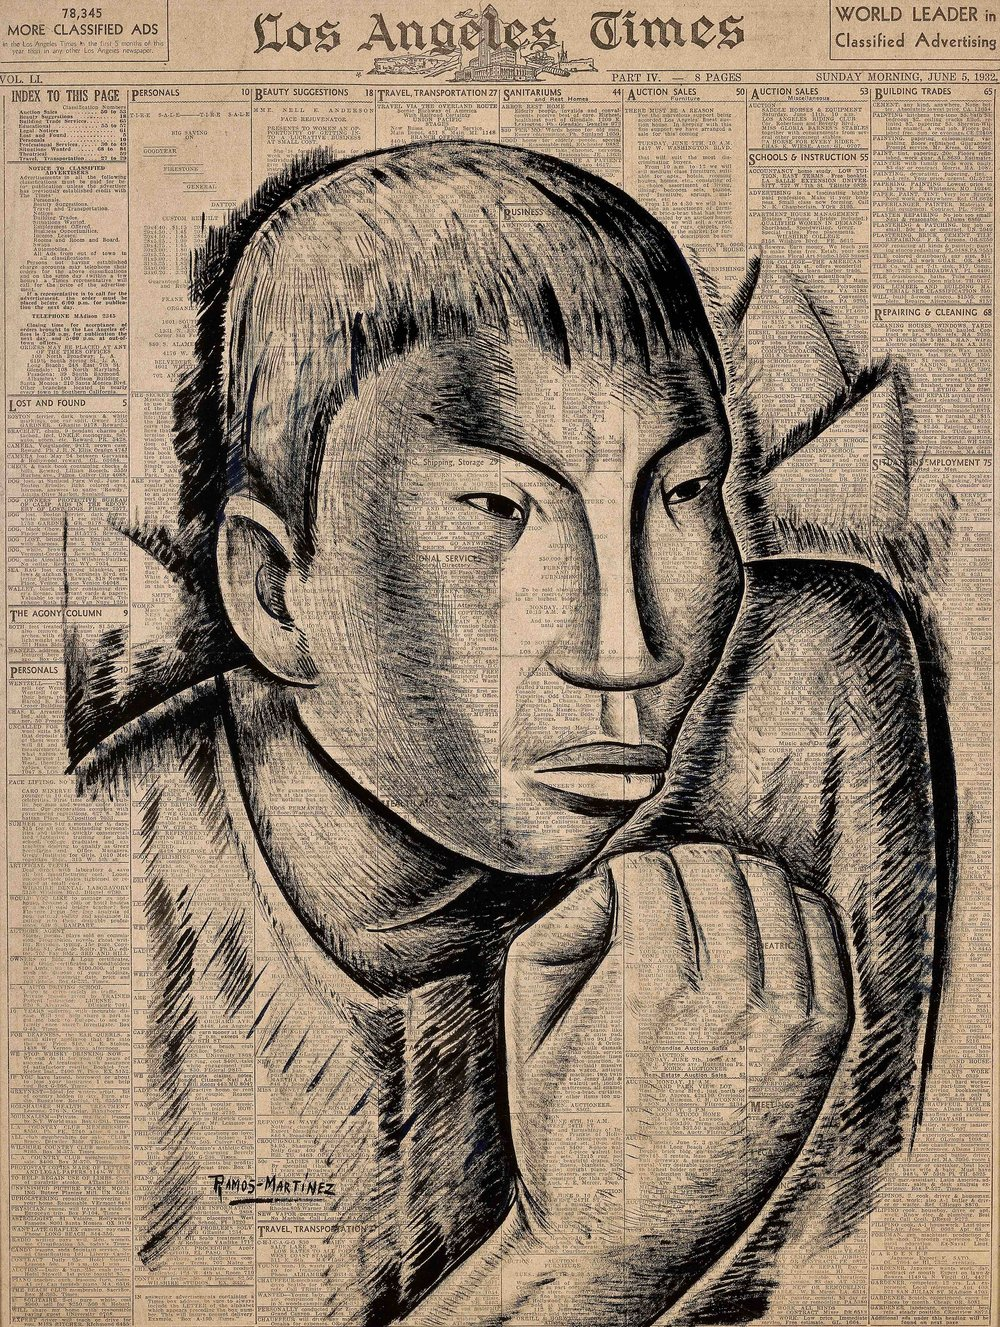 El Defensor / The Protector  1932 tempera and Conté crayon on newsprint / temple y crayon Conté sobre papel periódico ( Los Angeles Times , June 5, 1932) 21 x 15.5 inches / 53.3 x 39.4 centímetros Private collection